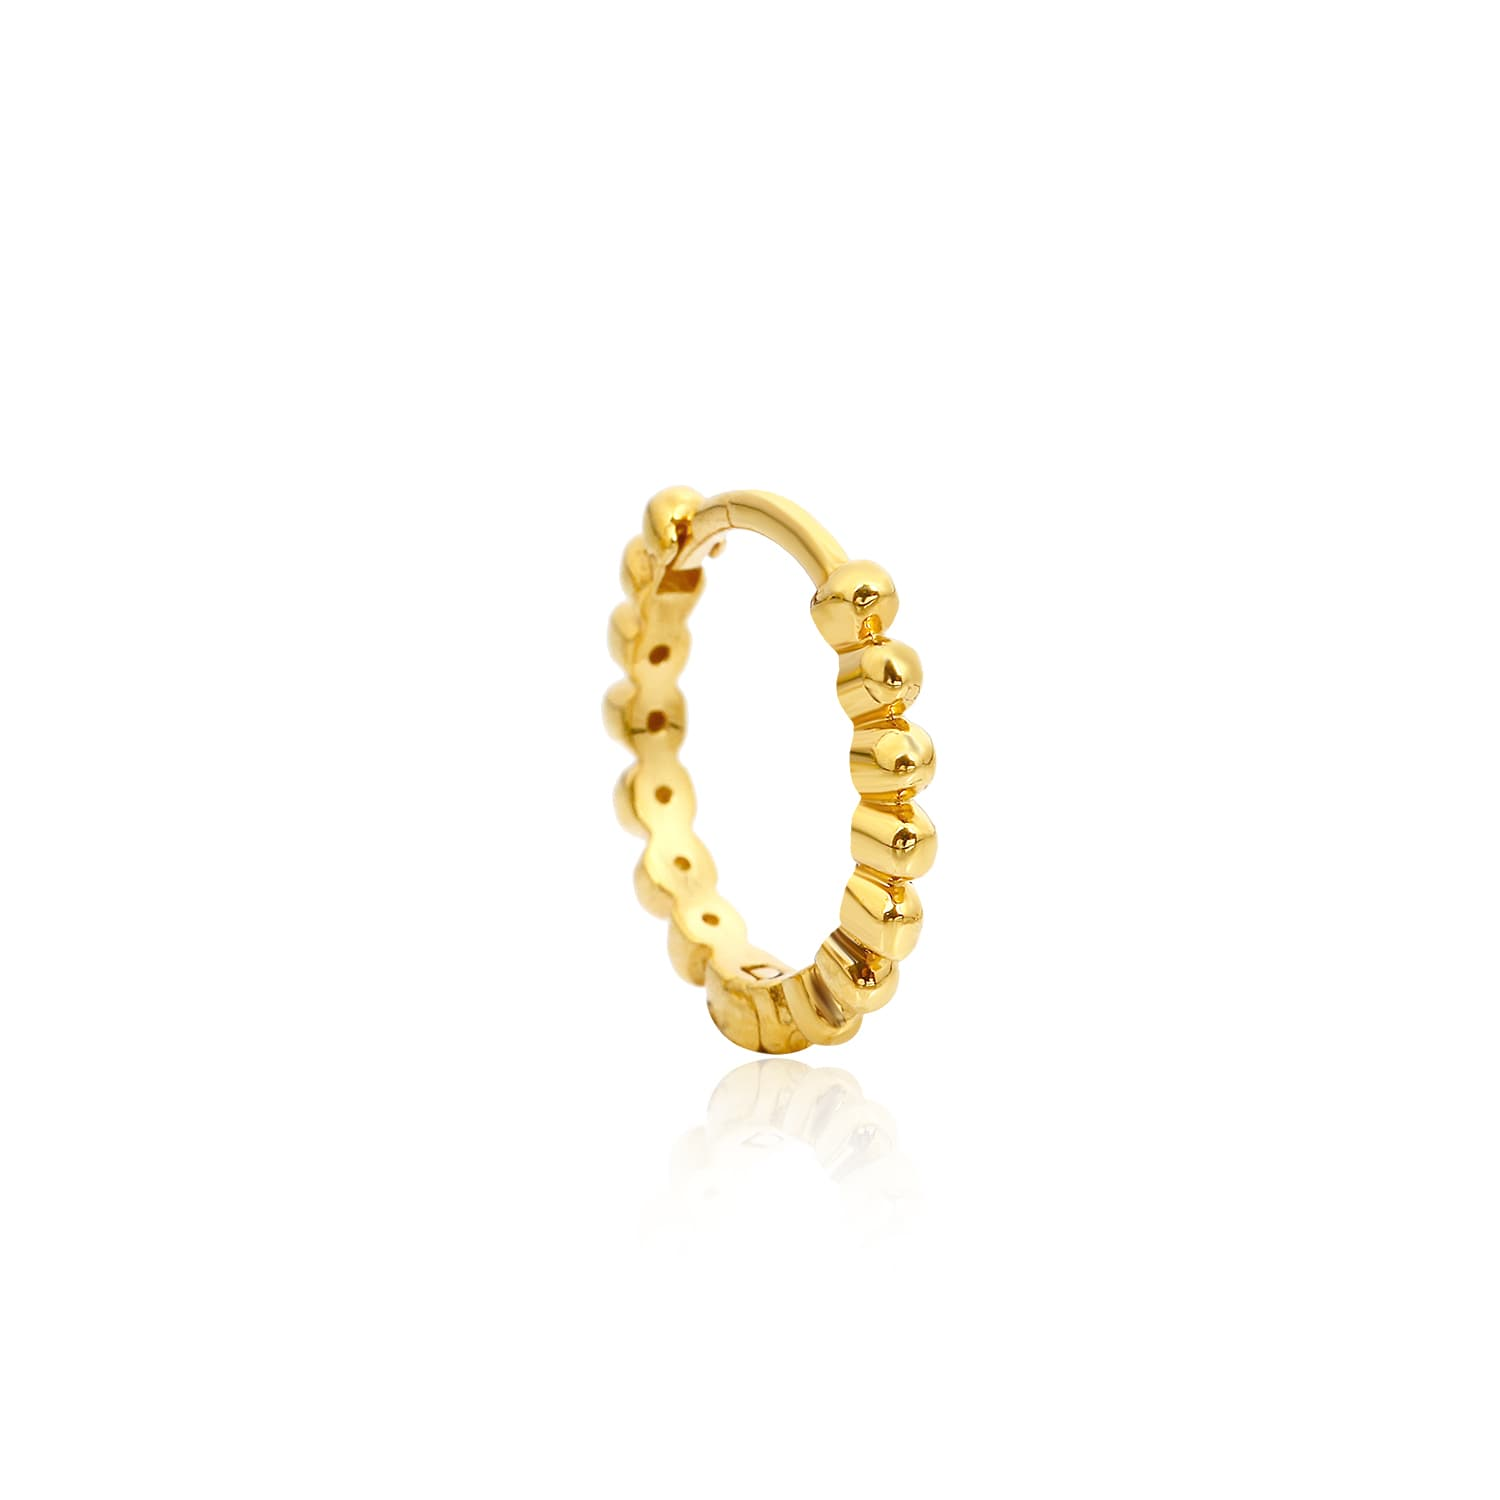 Gold plated toptop hoop earrings